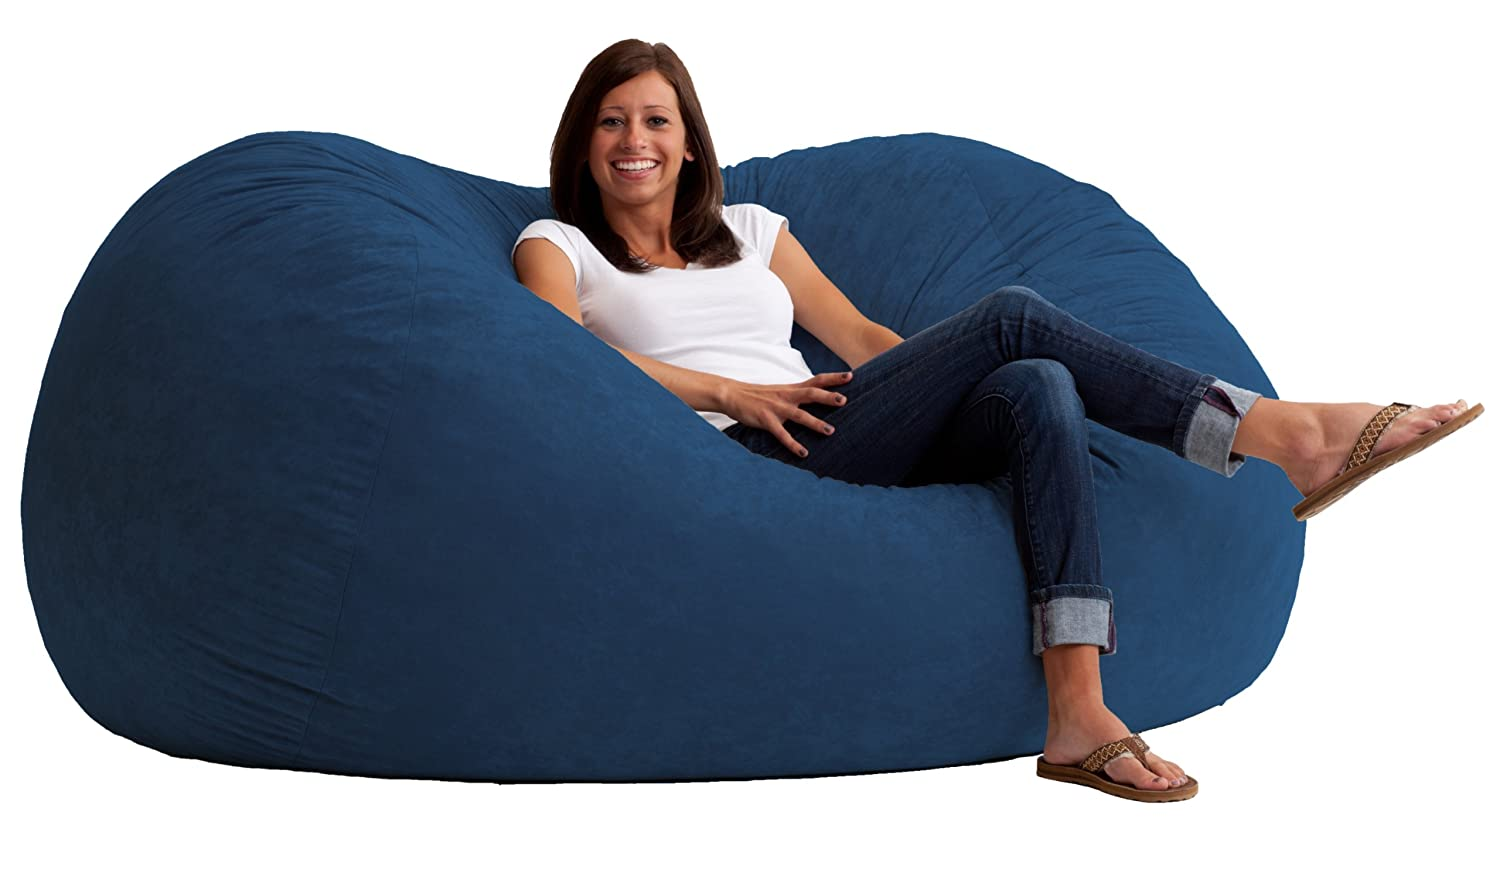 Bean Bag Chairs Cool And fy Sitting At Home to